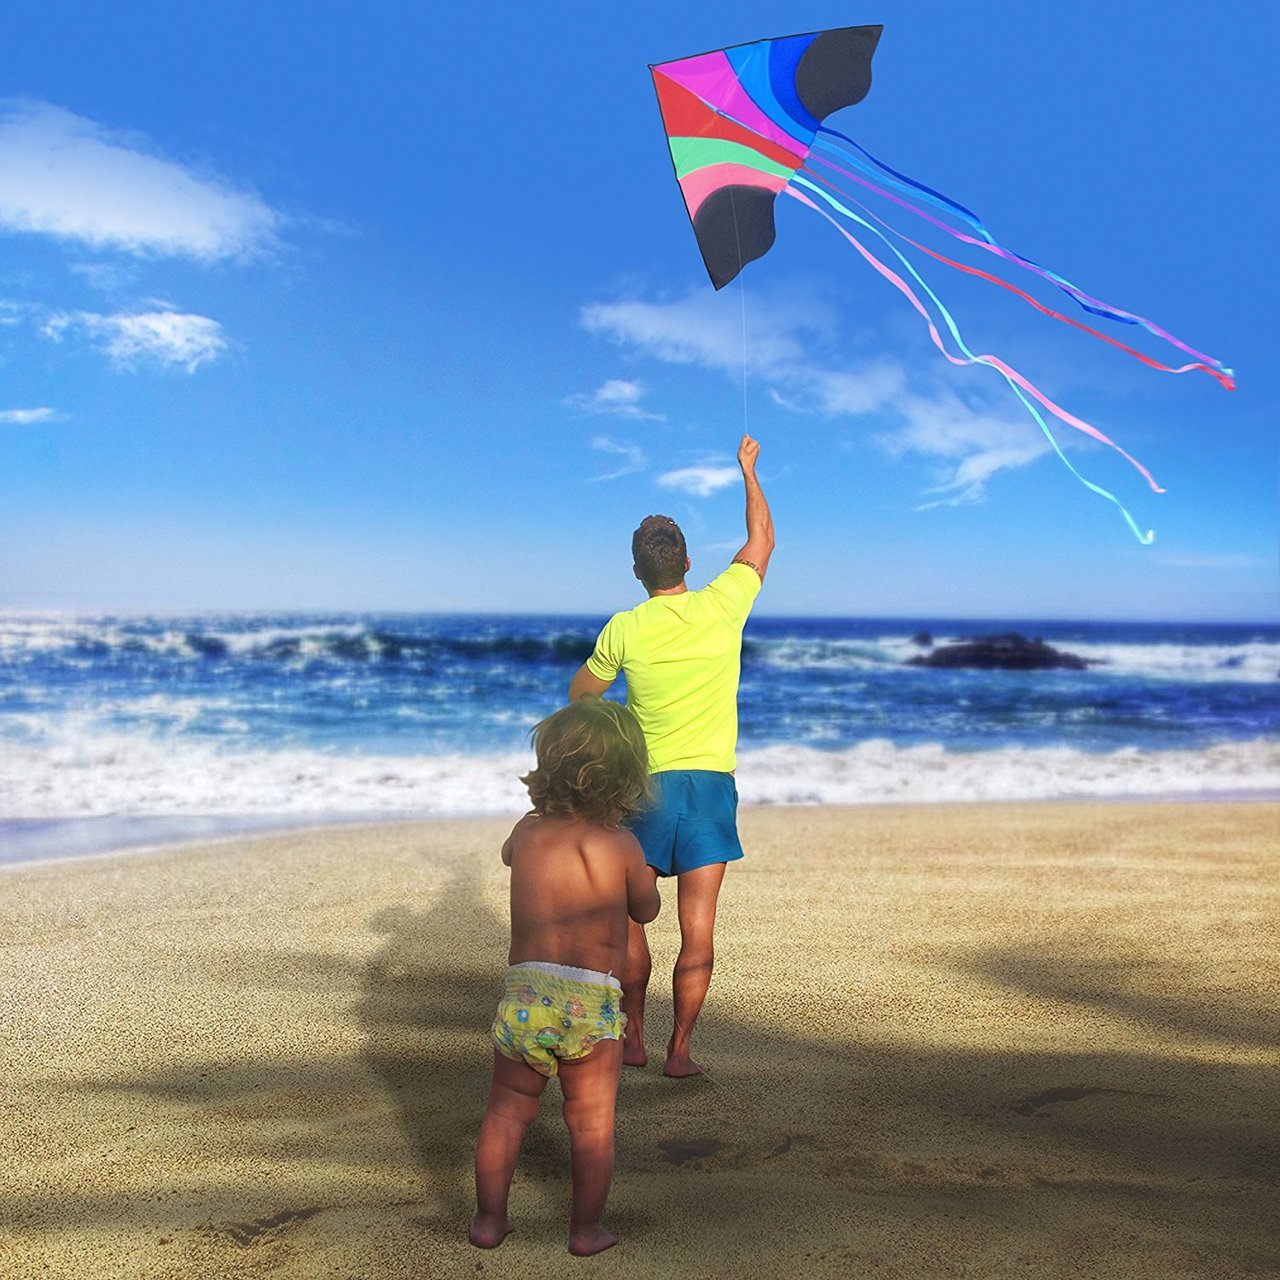 Kite – Huge Rainbow Kite